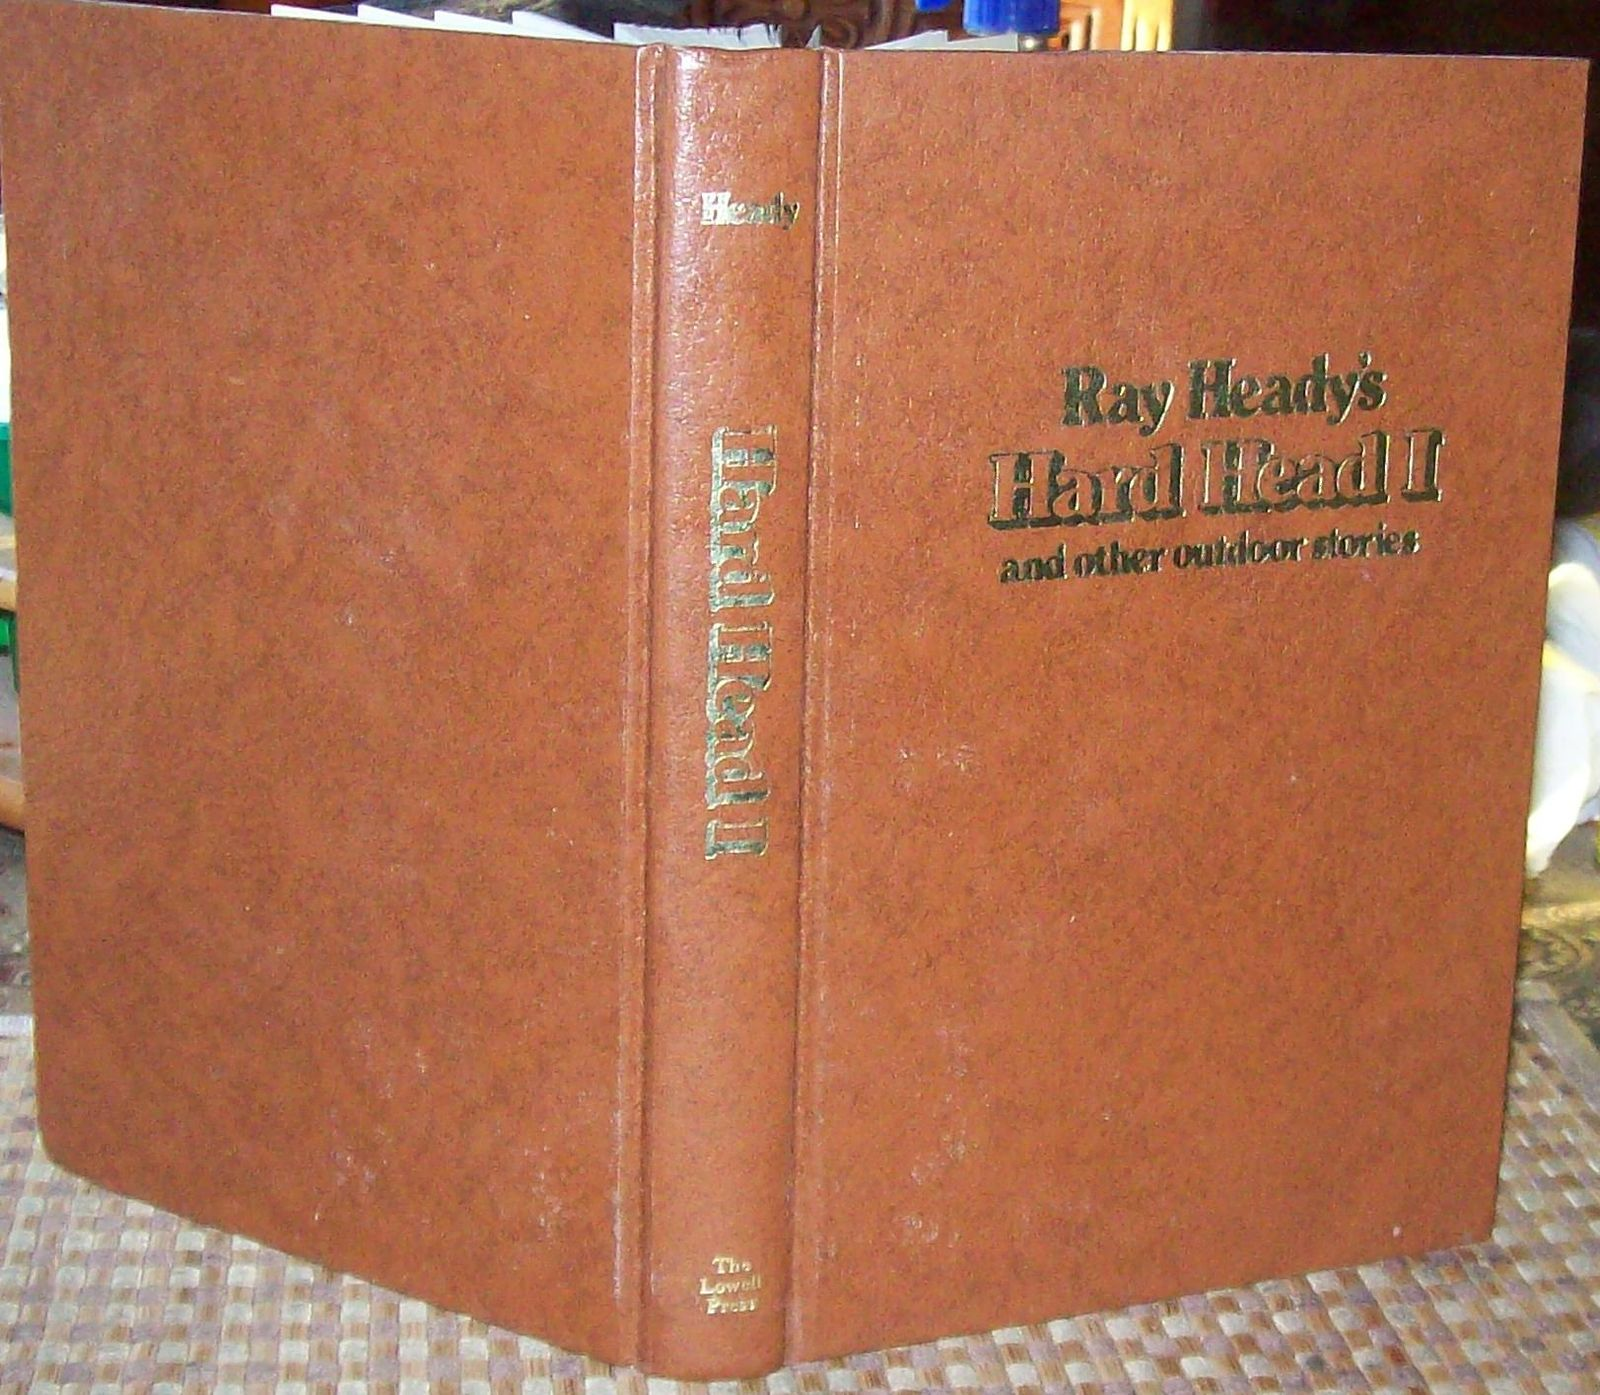 Ray Heady's Hard Head 1 & Other Outdoor Stories 1980 HB